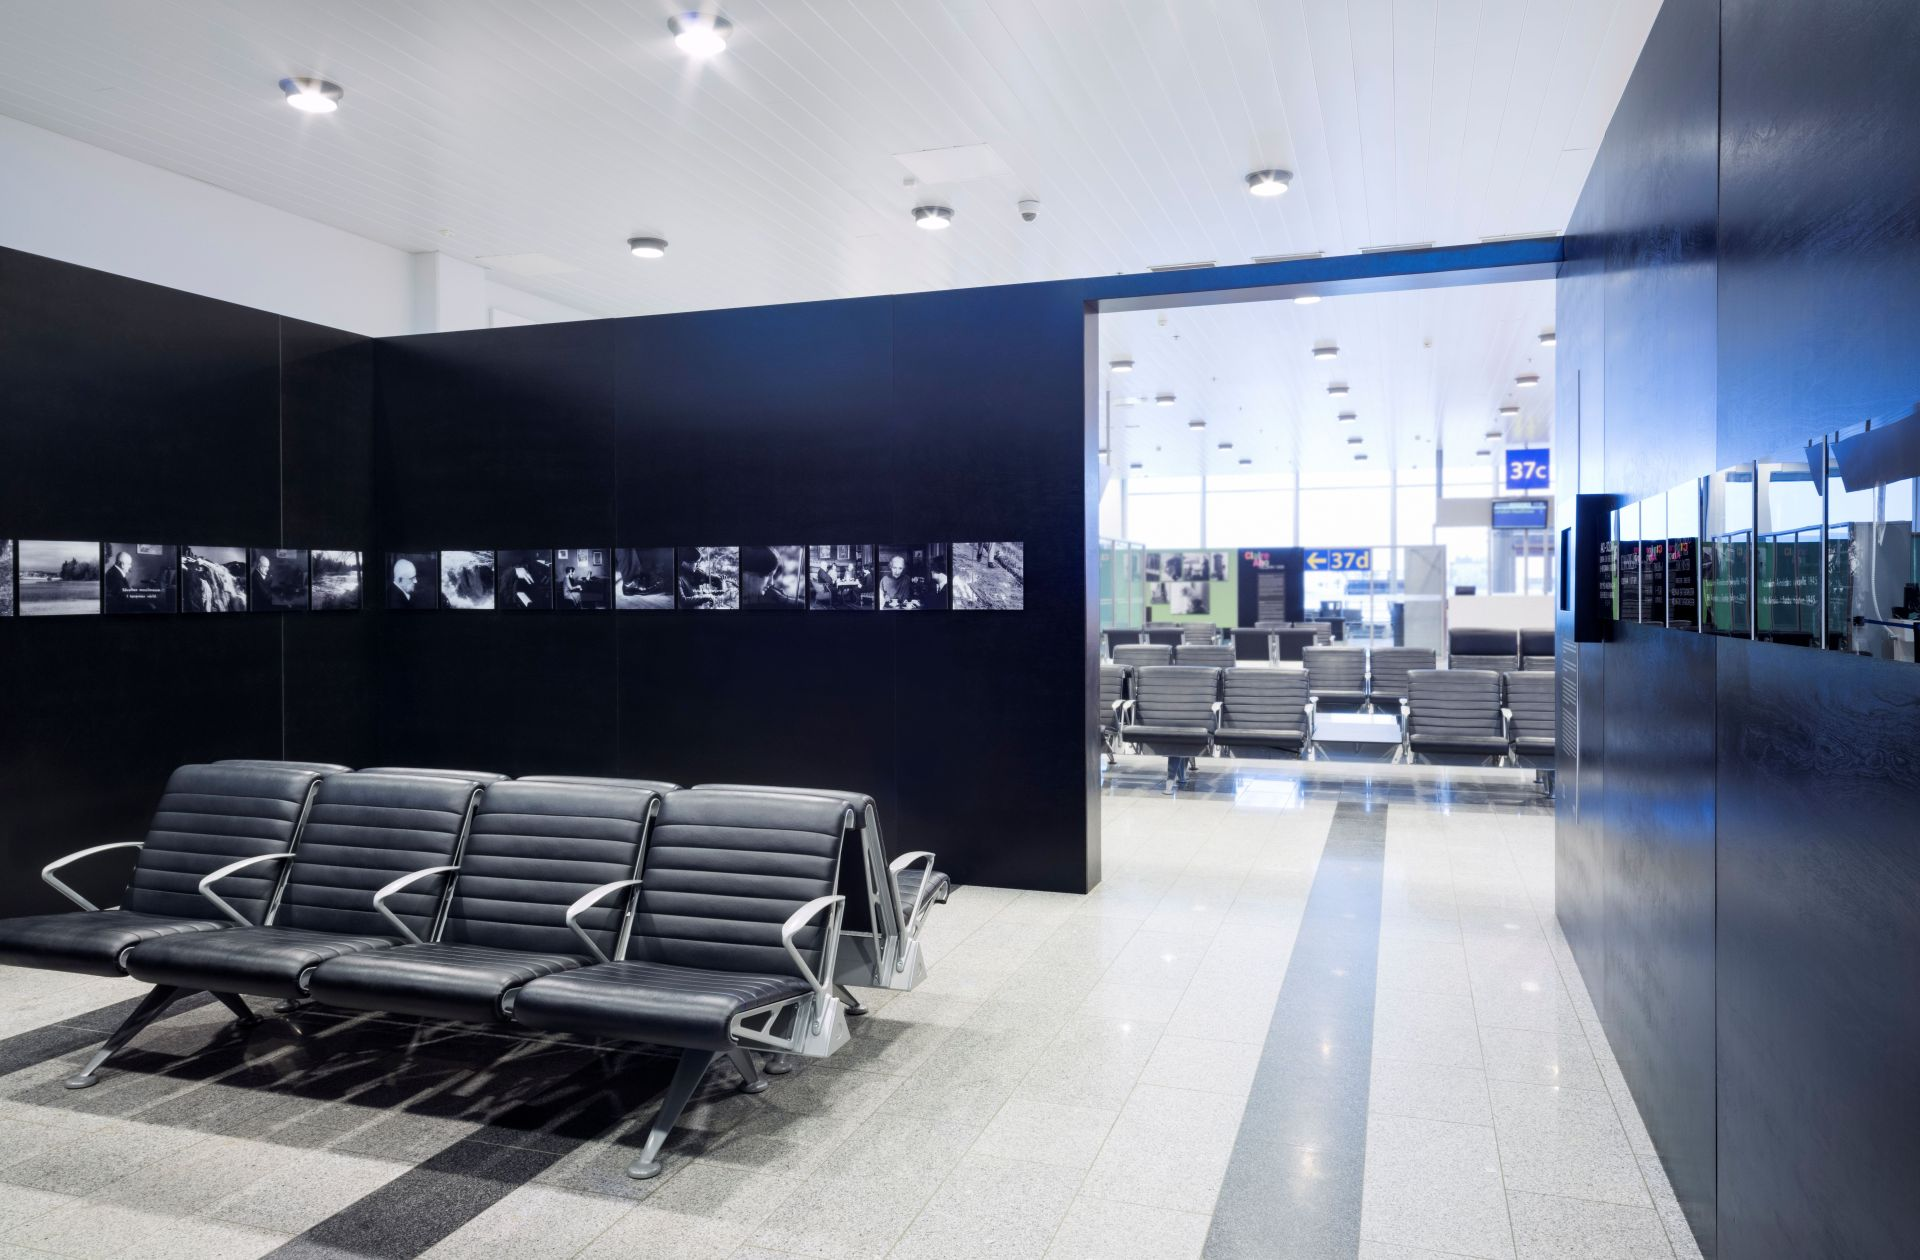 A virtual tour at Helsinki Airport expansion